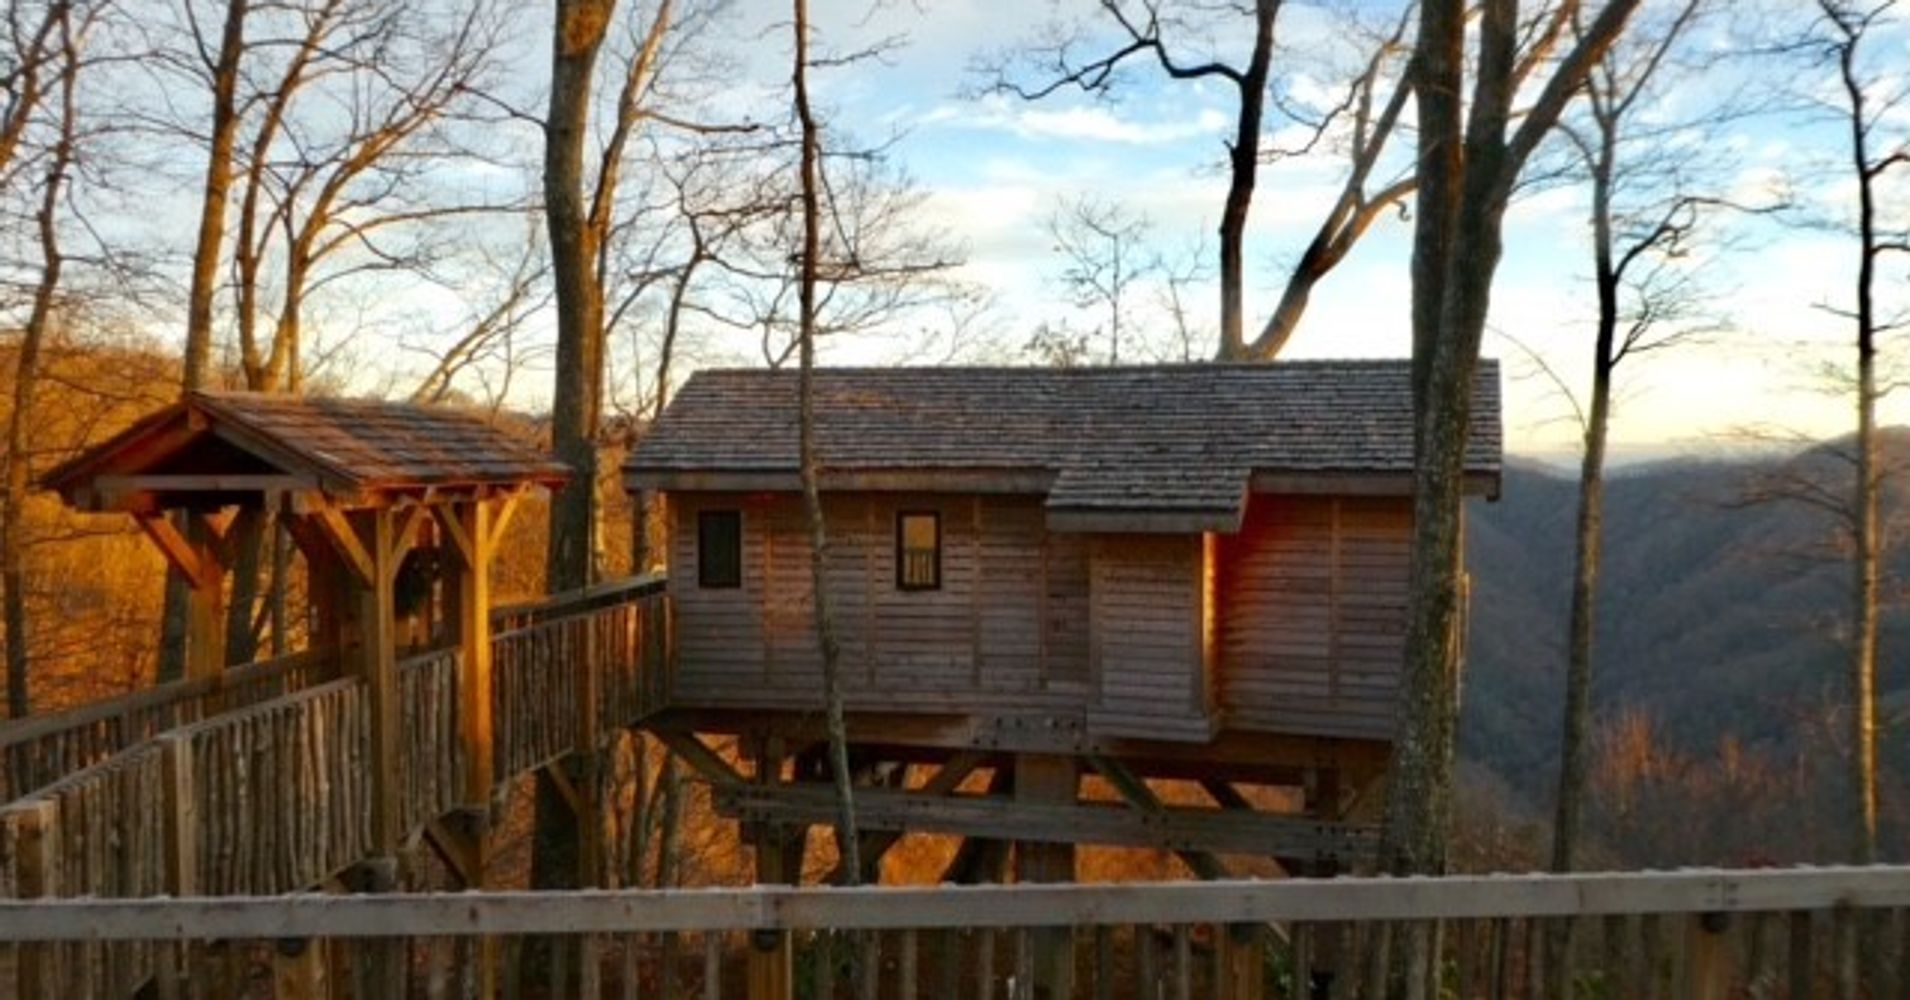 2017 01 tree house rentals in north carolina - 2017 01 Tree House Rentals In North Carolina 50